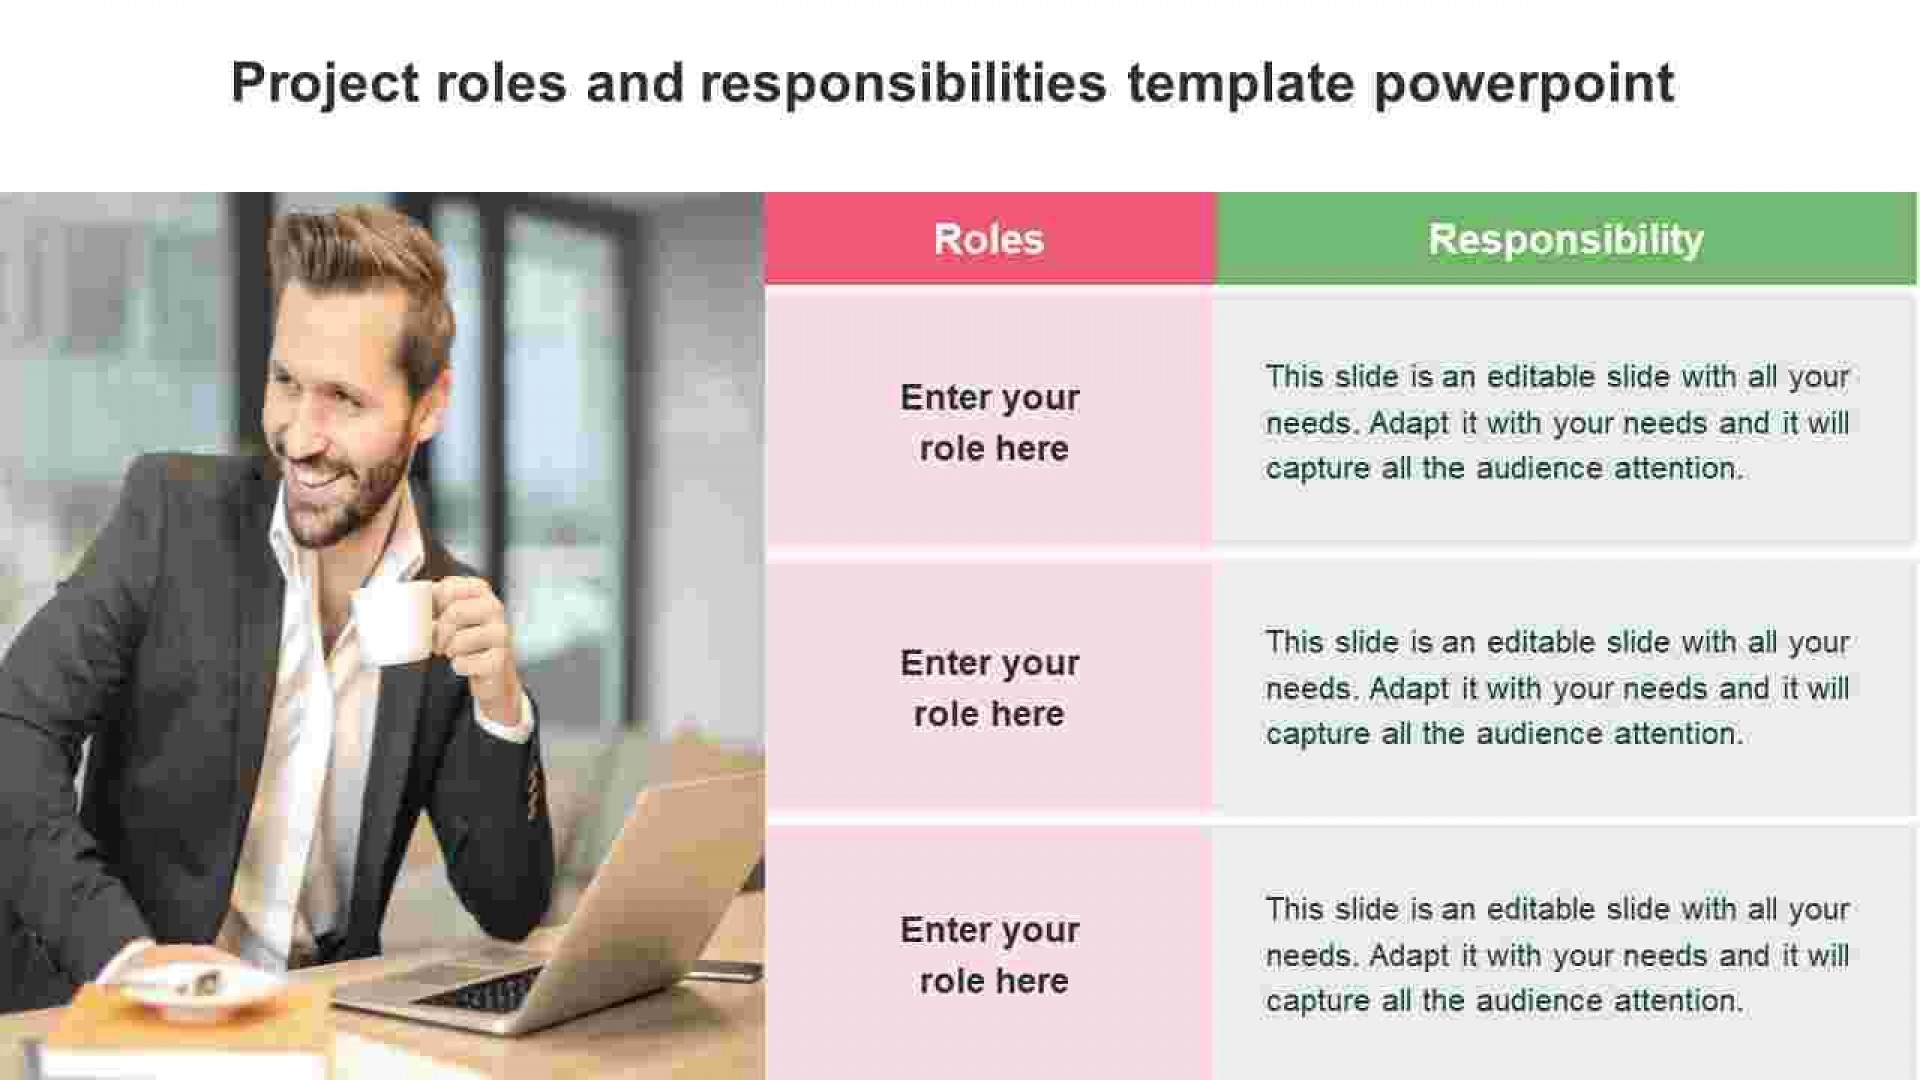 004 Awful Project Role And Responsibilitie Template Powerpoint Sample 1920